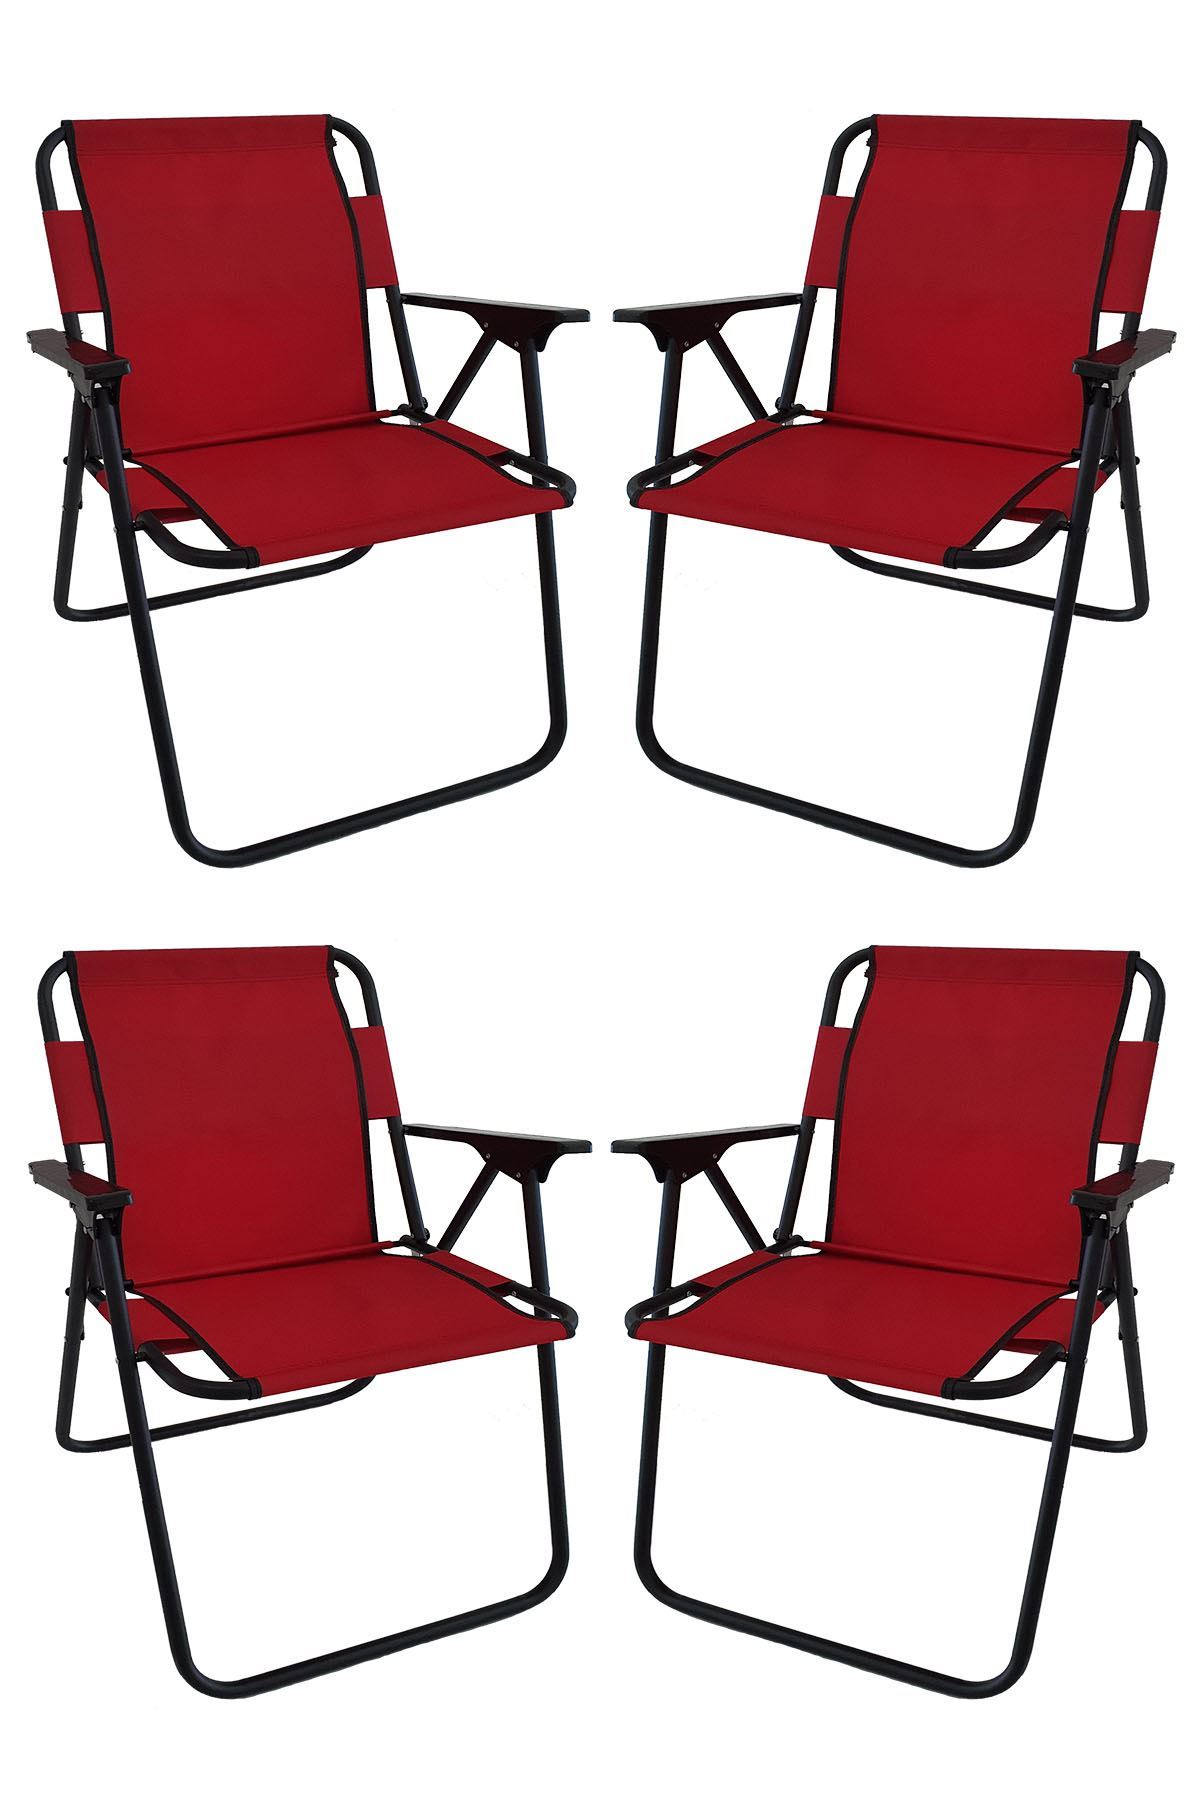 Bofigo 60X80 Pine Patterned Folding Table + 4 Pieces Folding Chair Camping Set Garden Set Red